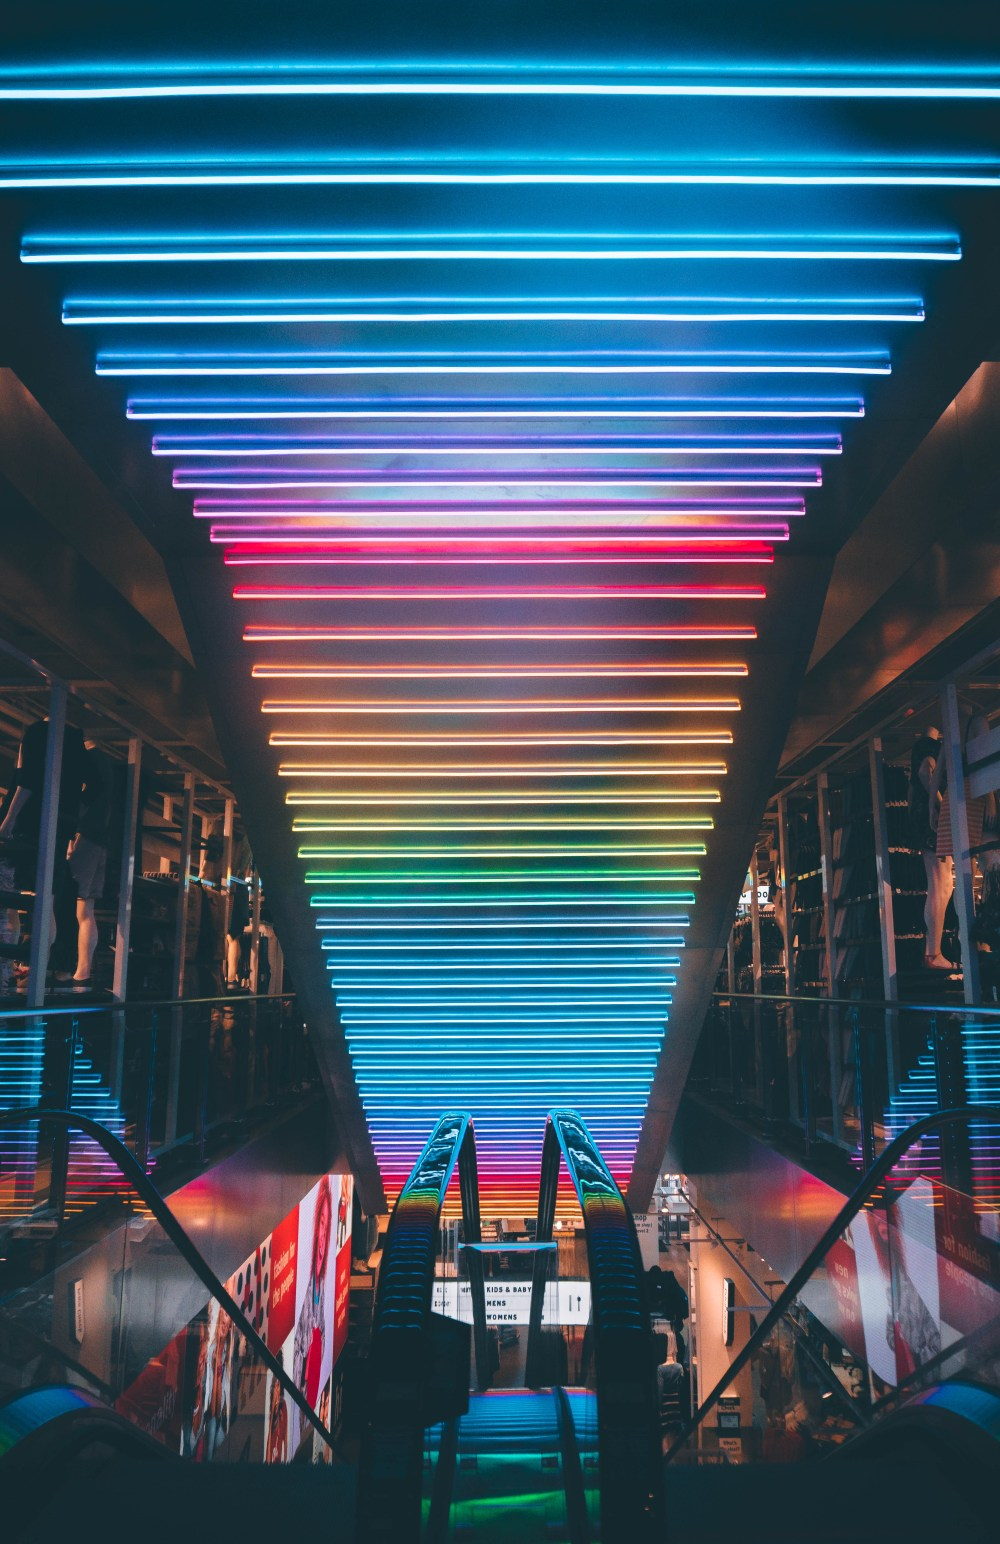 Chris Brown X Iphone Wallpaper Neon Light Pictures Download Free Images On Unsplash